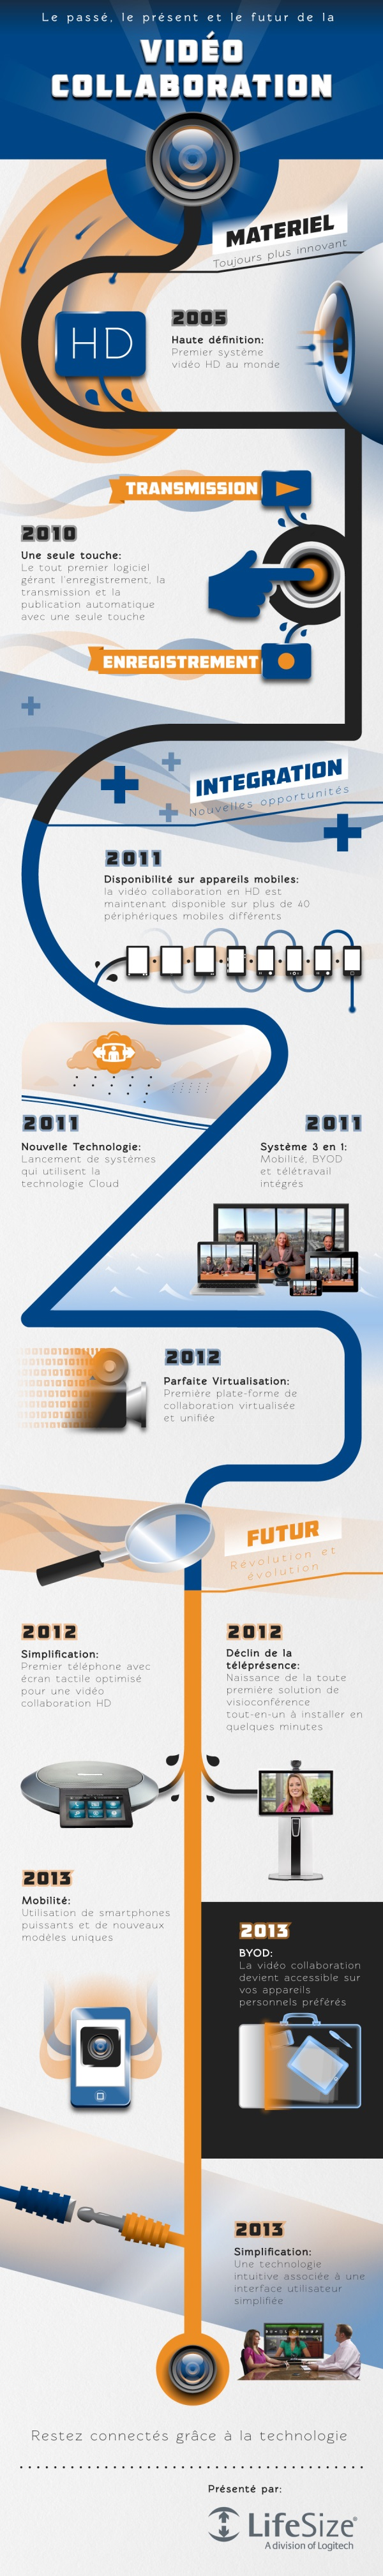 infographie-lifesize